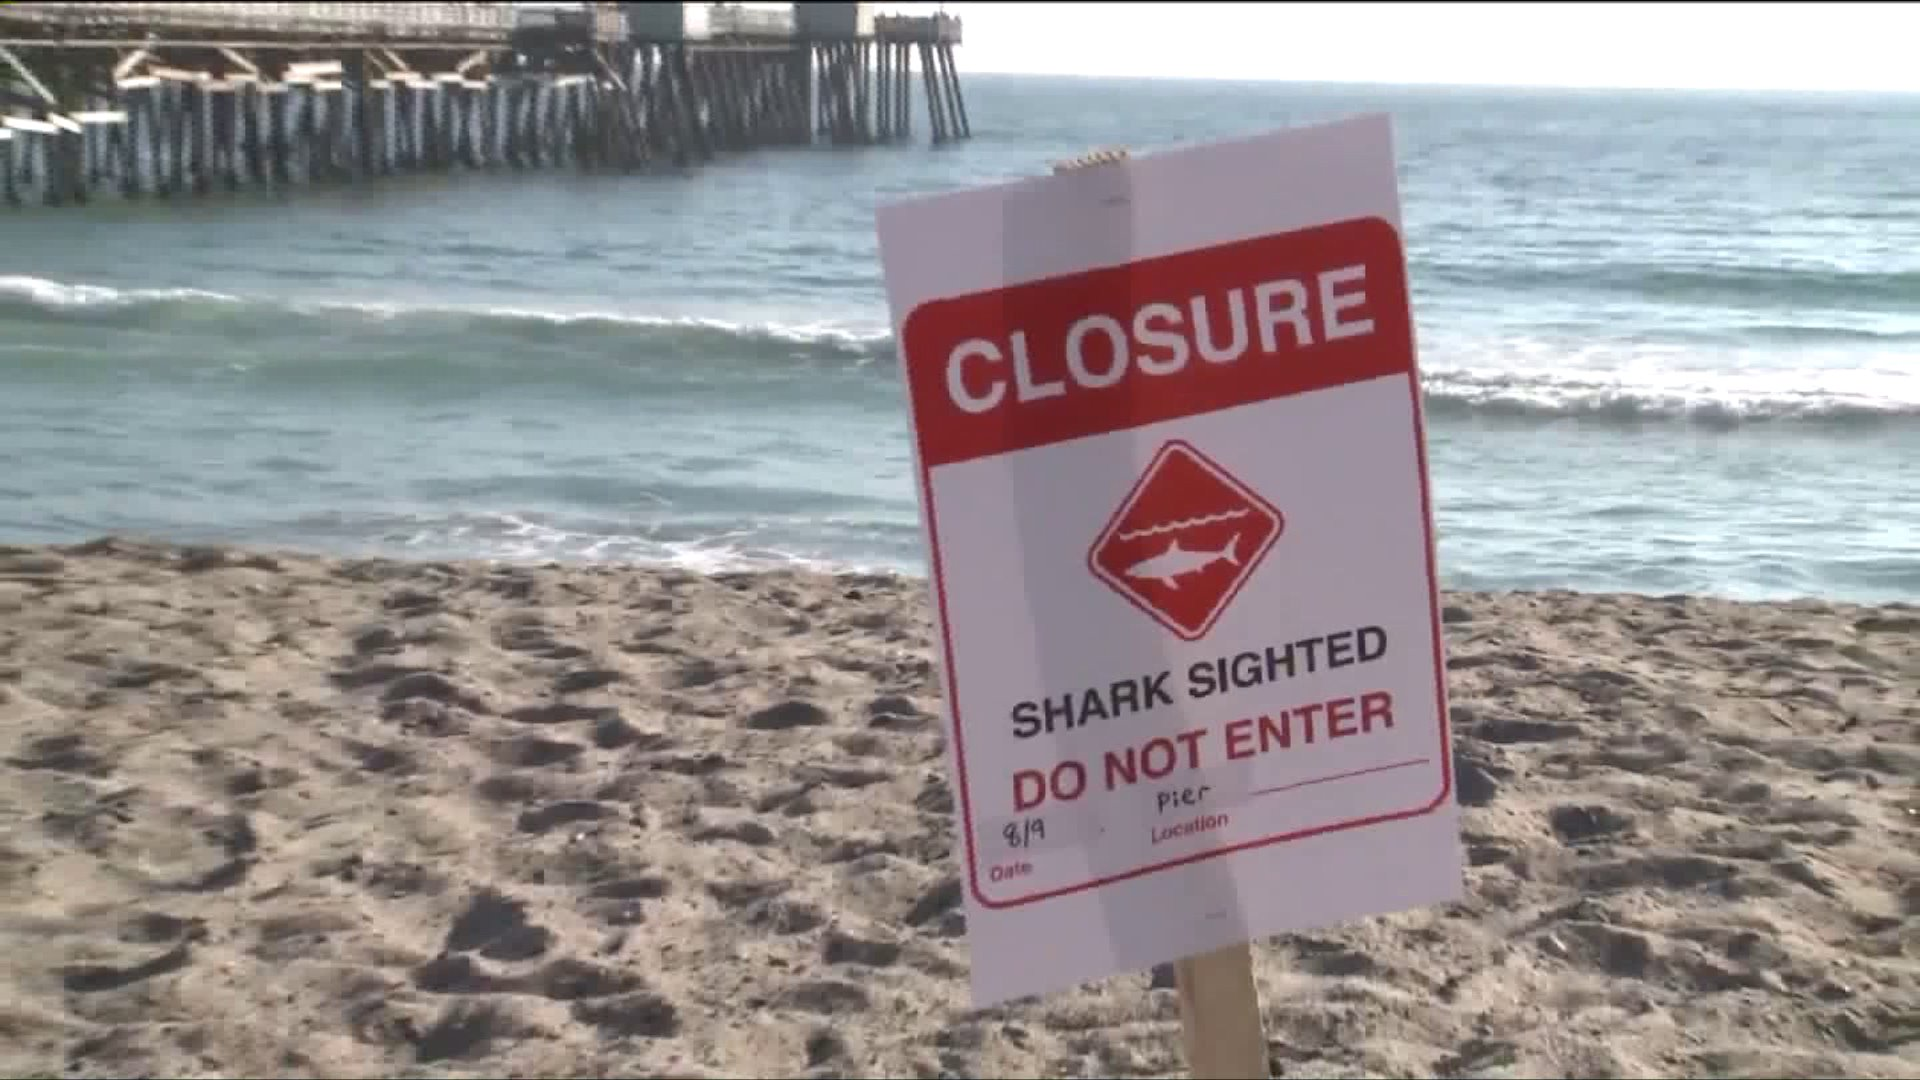 A sign is seen warning people not to enter the San Clemente beach where a shark was spotted on Aug. 9, 2017. (Credit: KTLA)